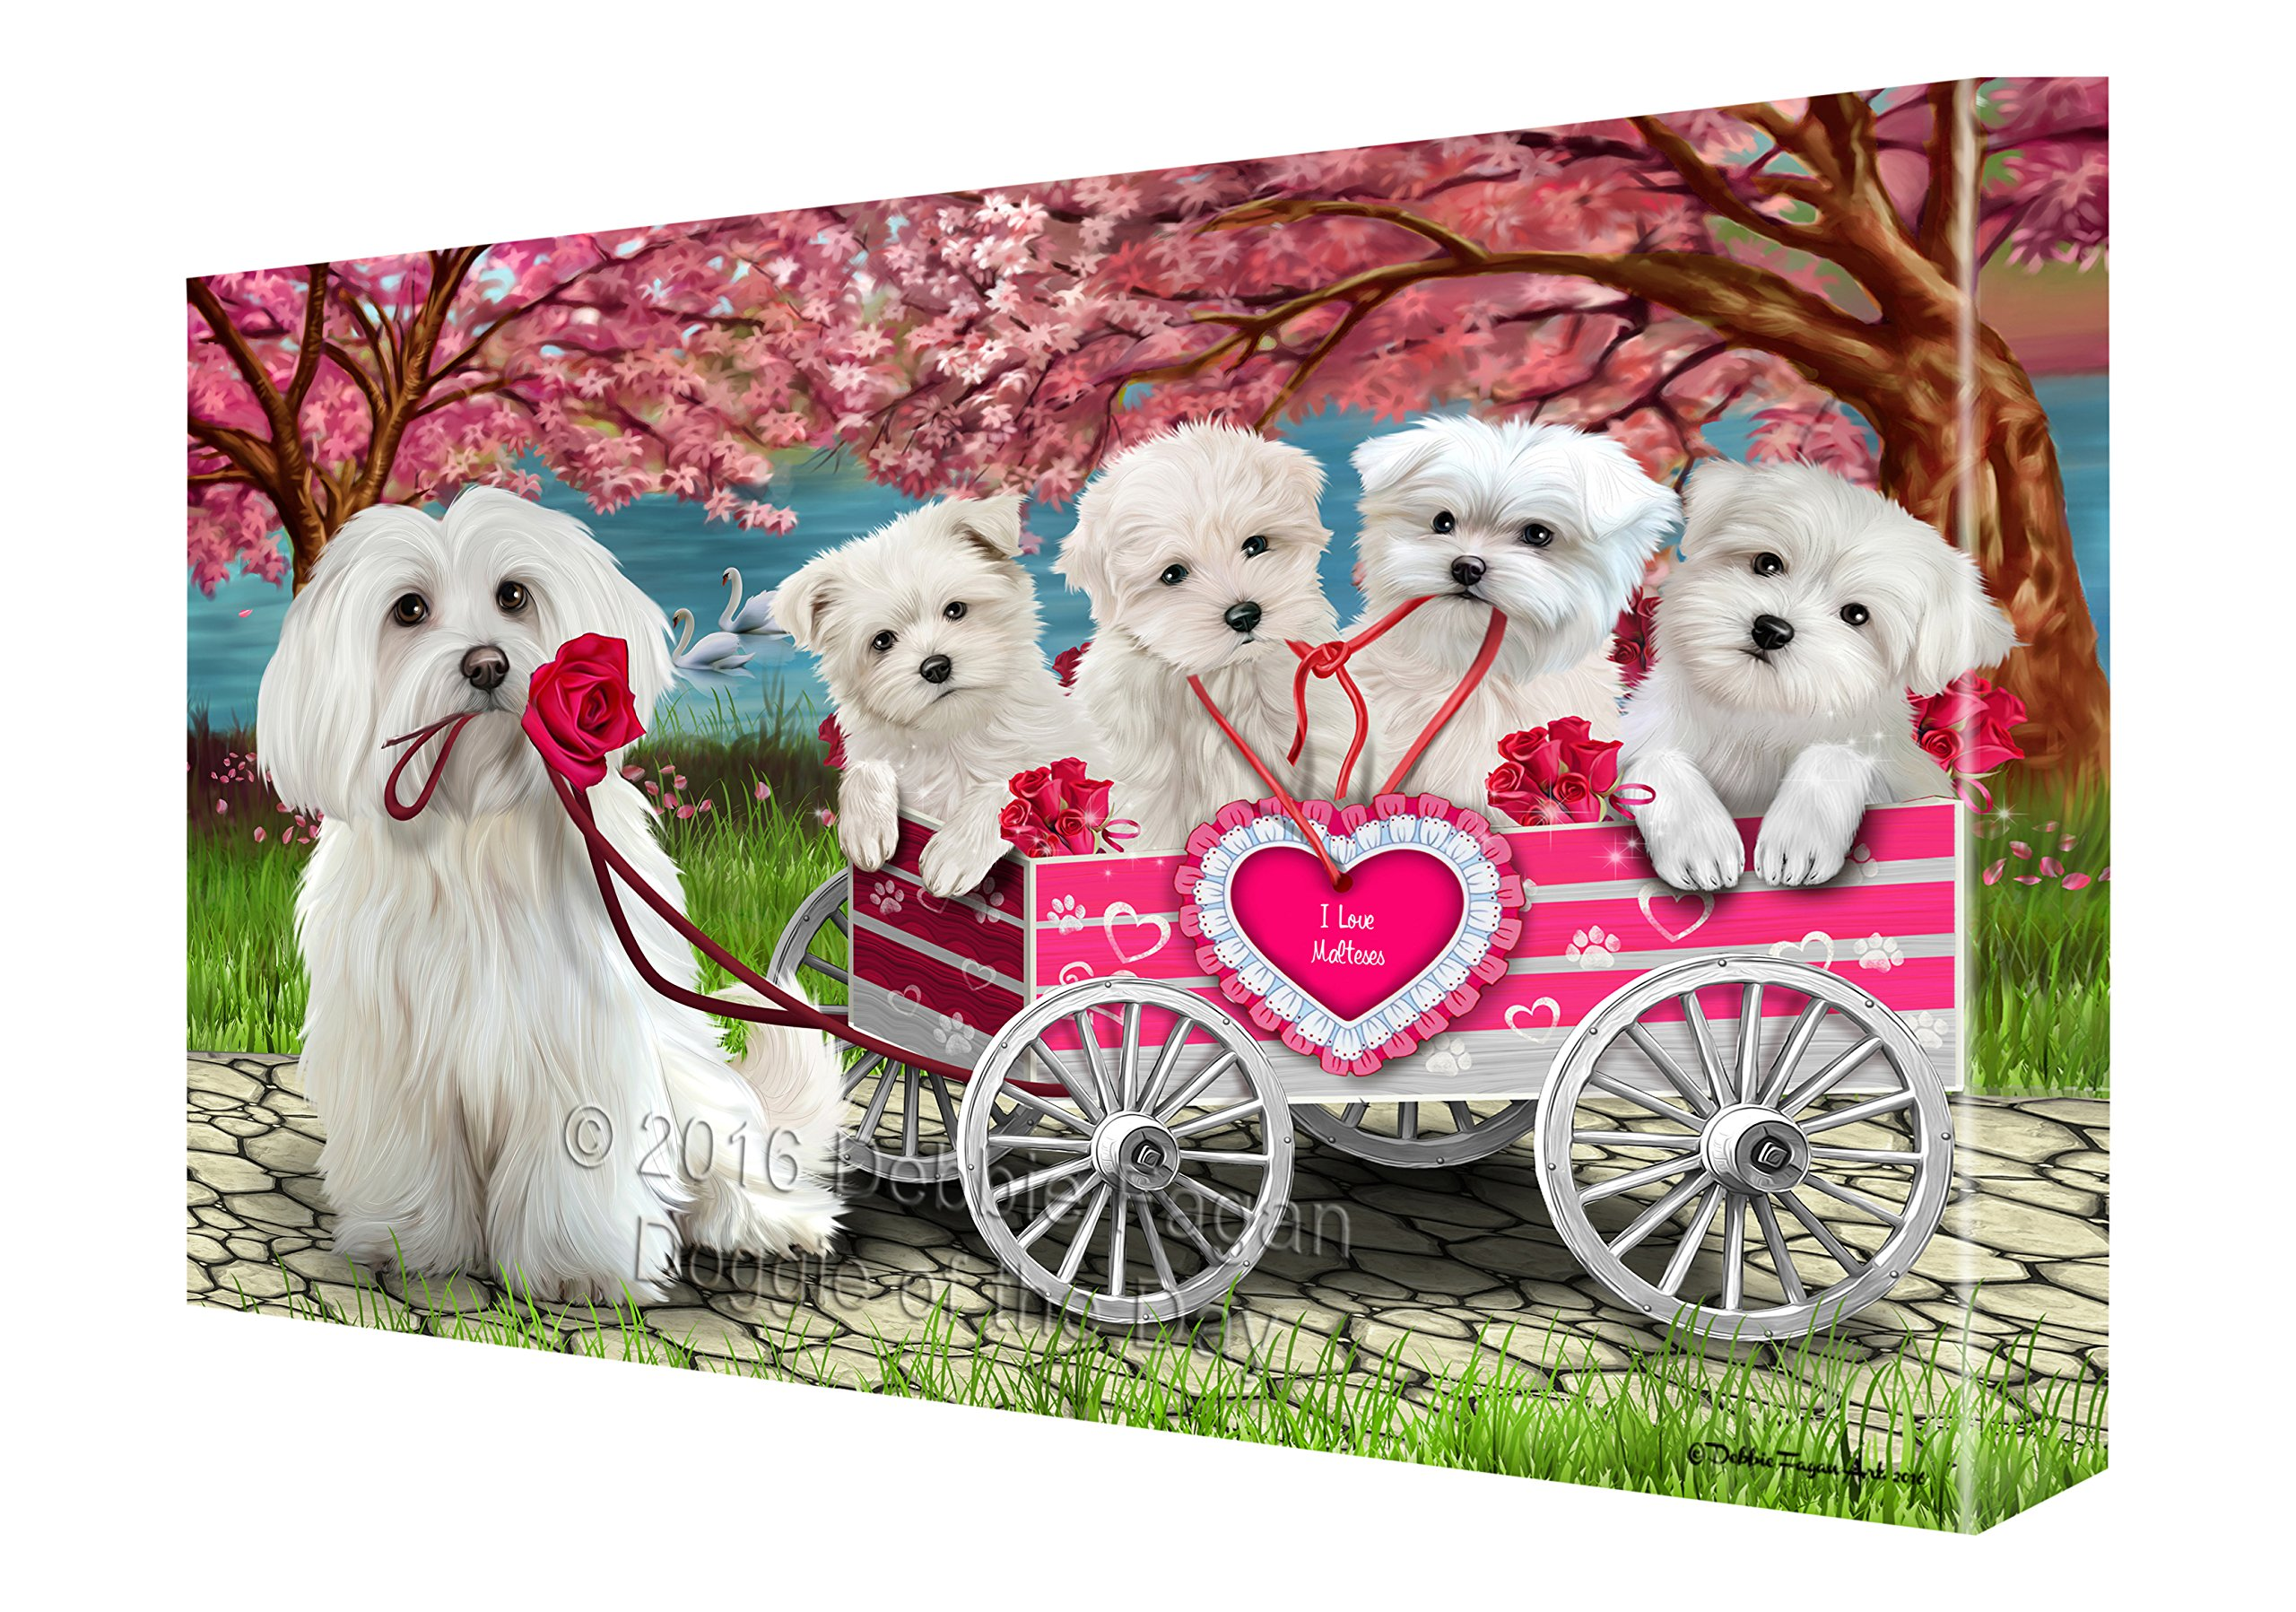 I Love Maltese Dogs in a Cart Canvas Wall Art (36x48) by Doggie of the Day (Image #1)